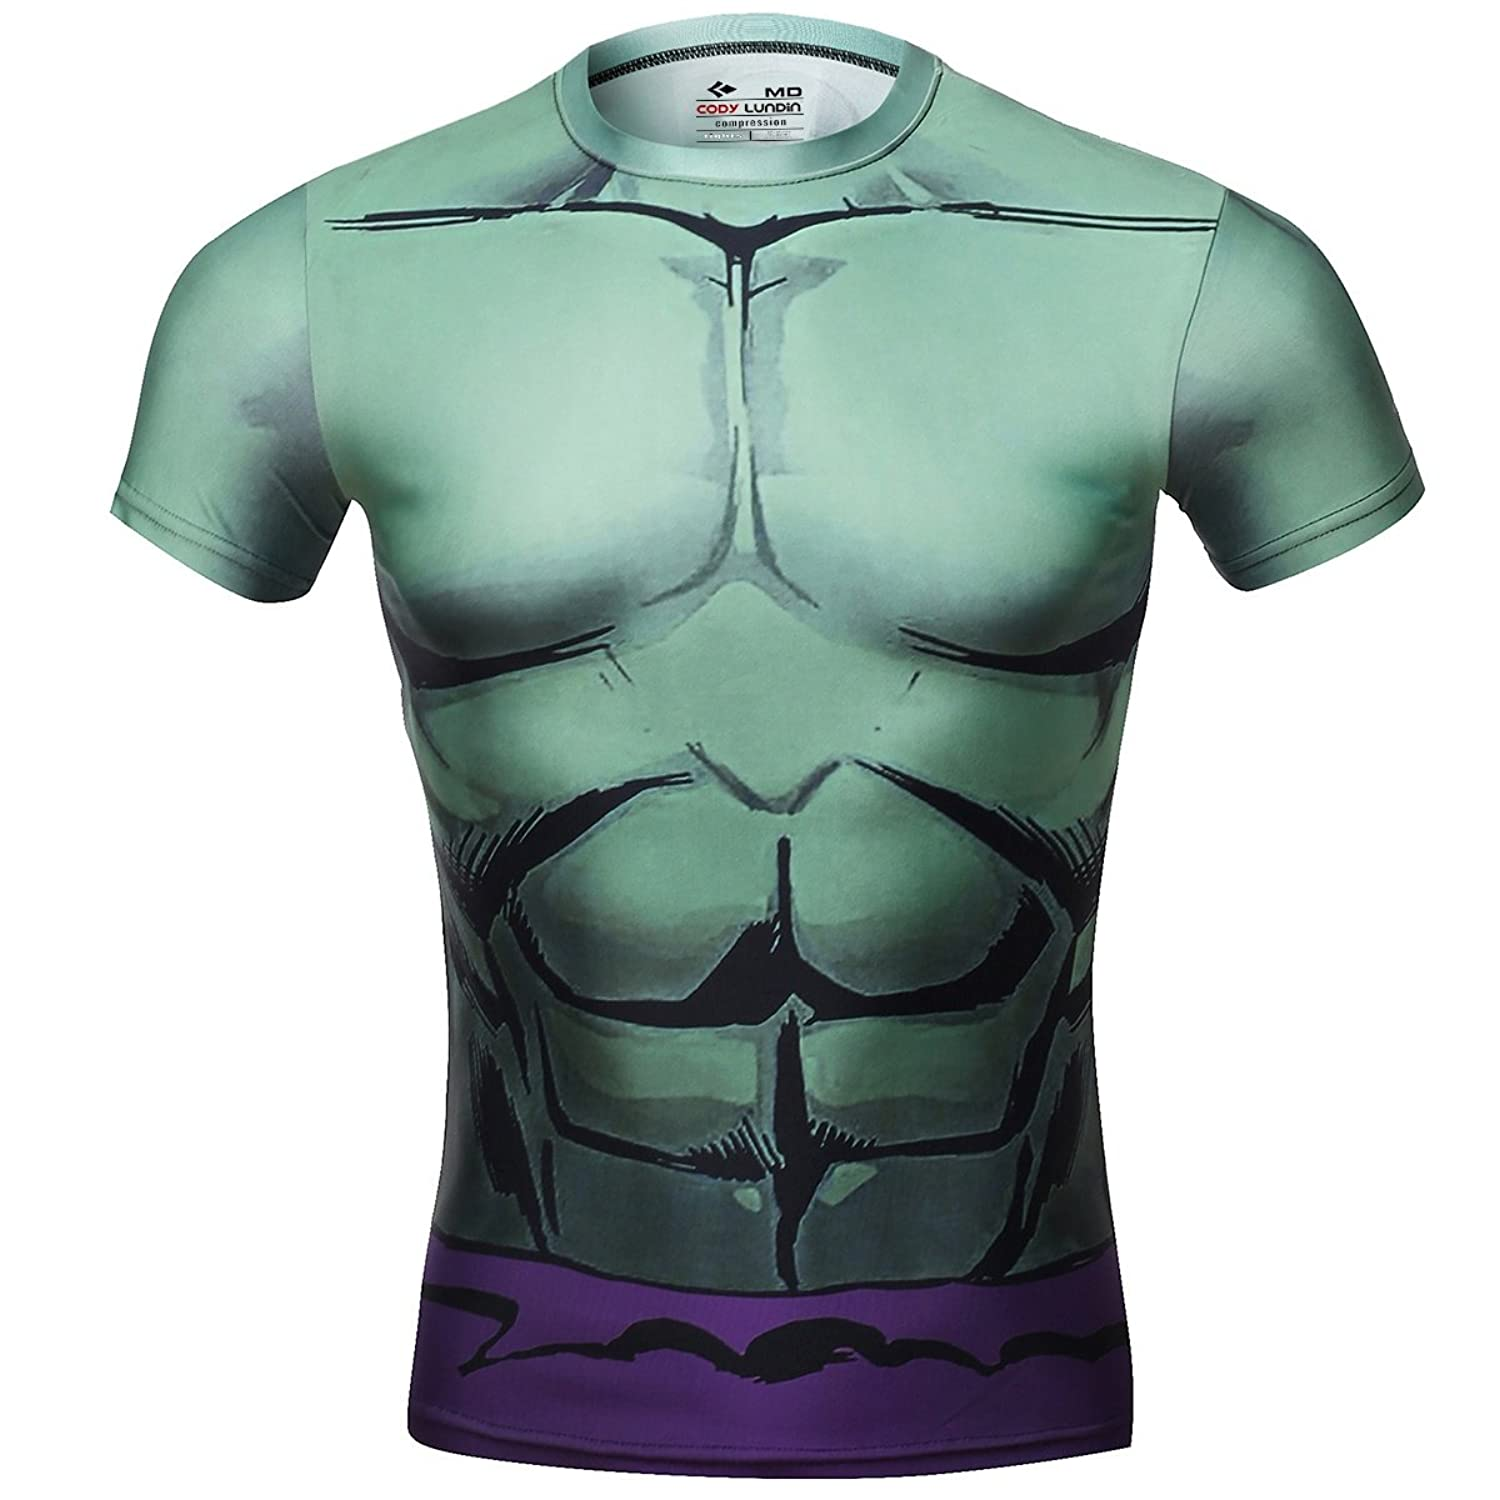 Image of Cody Lundin Men's Compression Rash Guard The Green-Skinned Monster